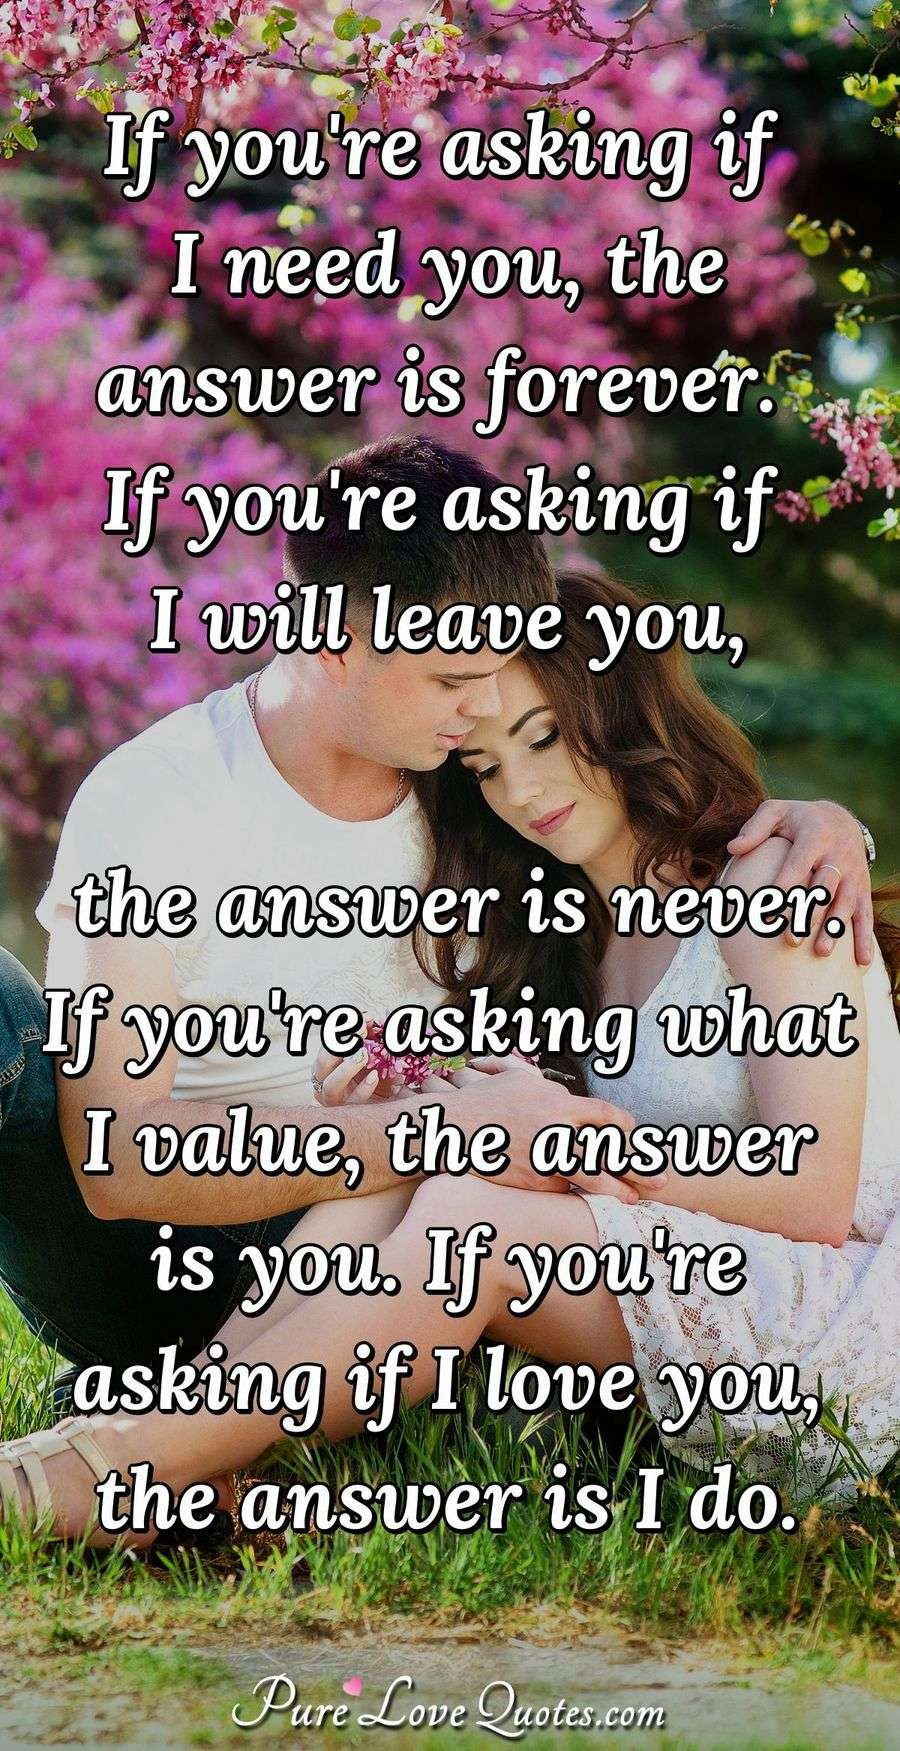 If you're asking if I need you, the answer is forever.  If you're asking if I will leave you, the answer is never.  If you're asking what I value, the answer is you.  If you're asking if I love you, the answer is I do.